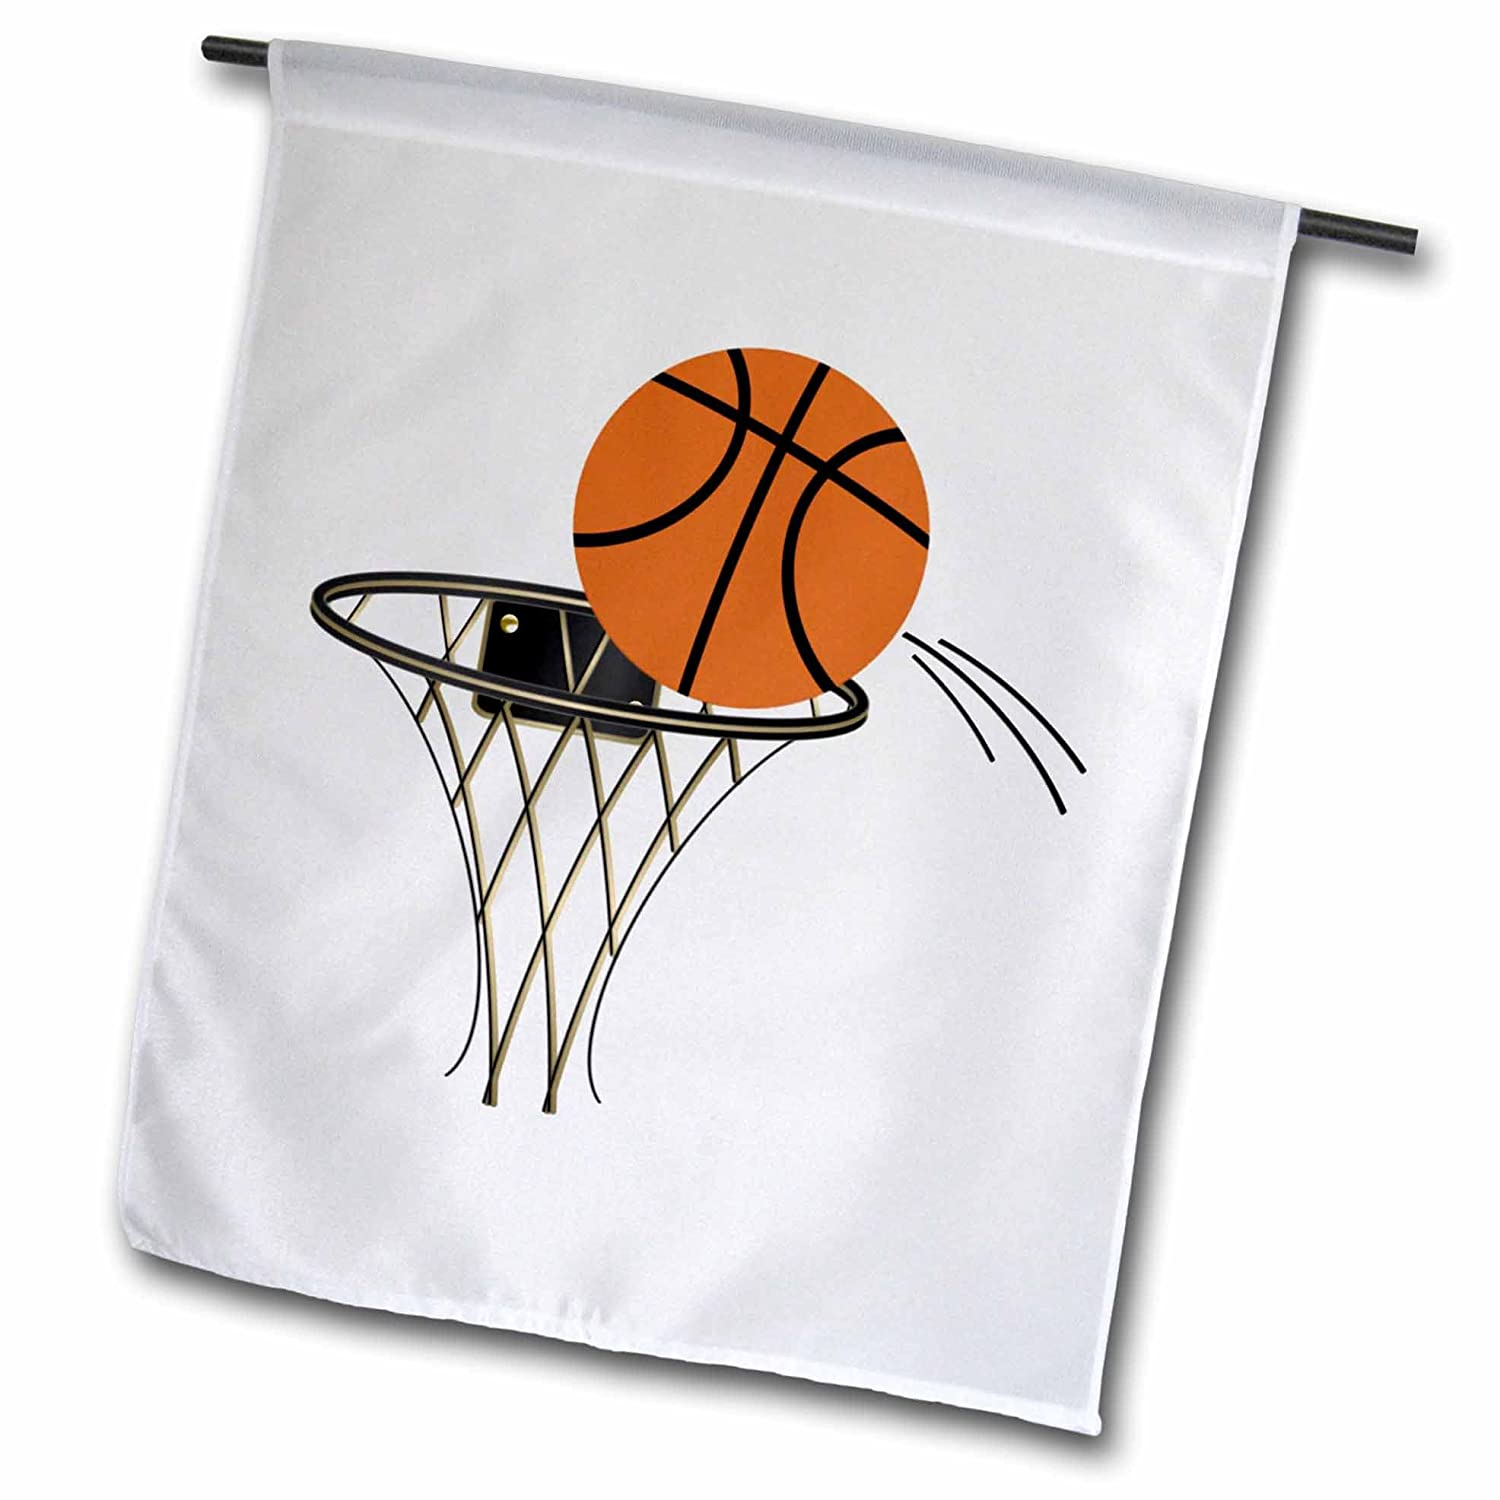 3drose Fl 165460 1 Cartoon Basketball Basket Garden Flag 12 By 18 Inch Amazon In Garden Outdoors